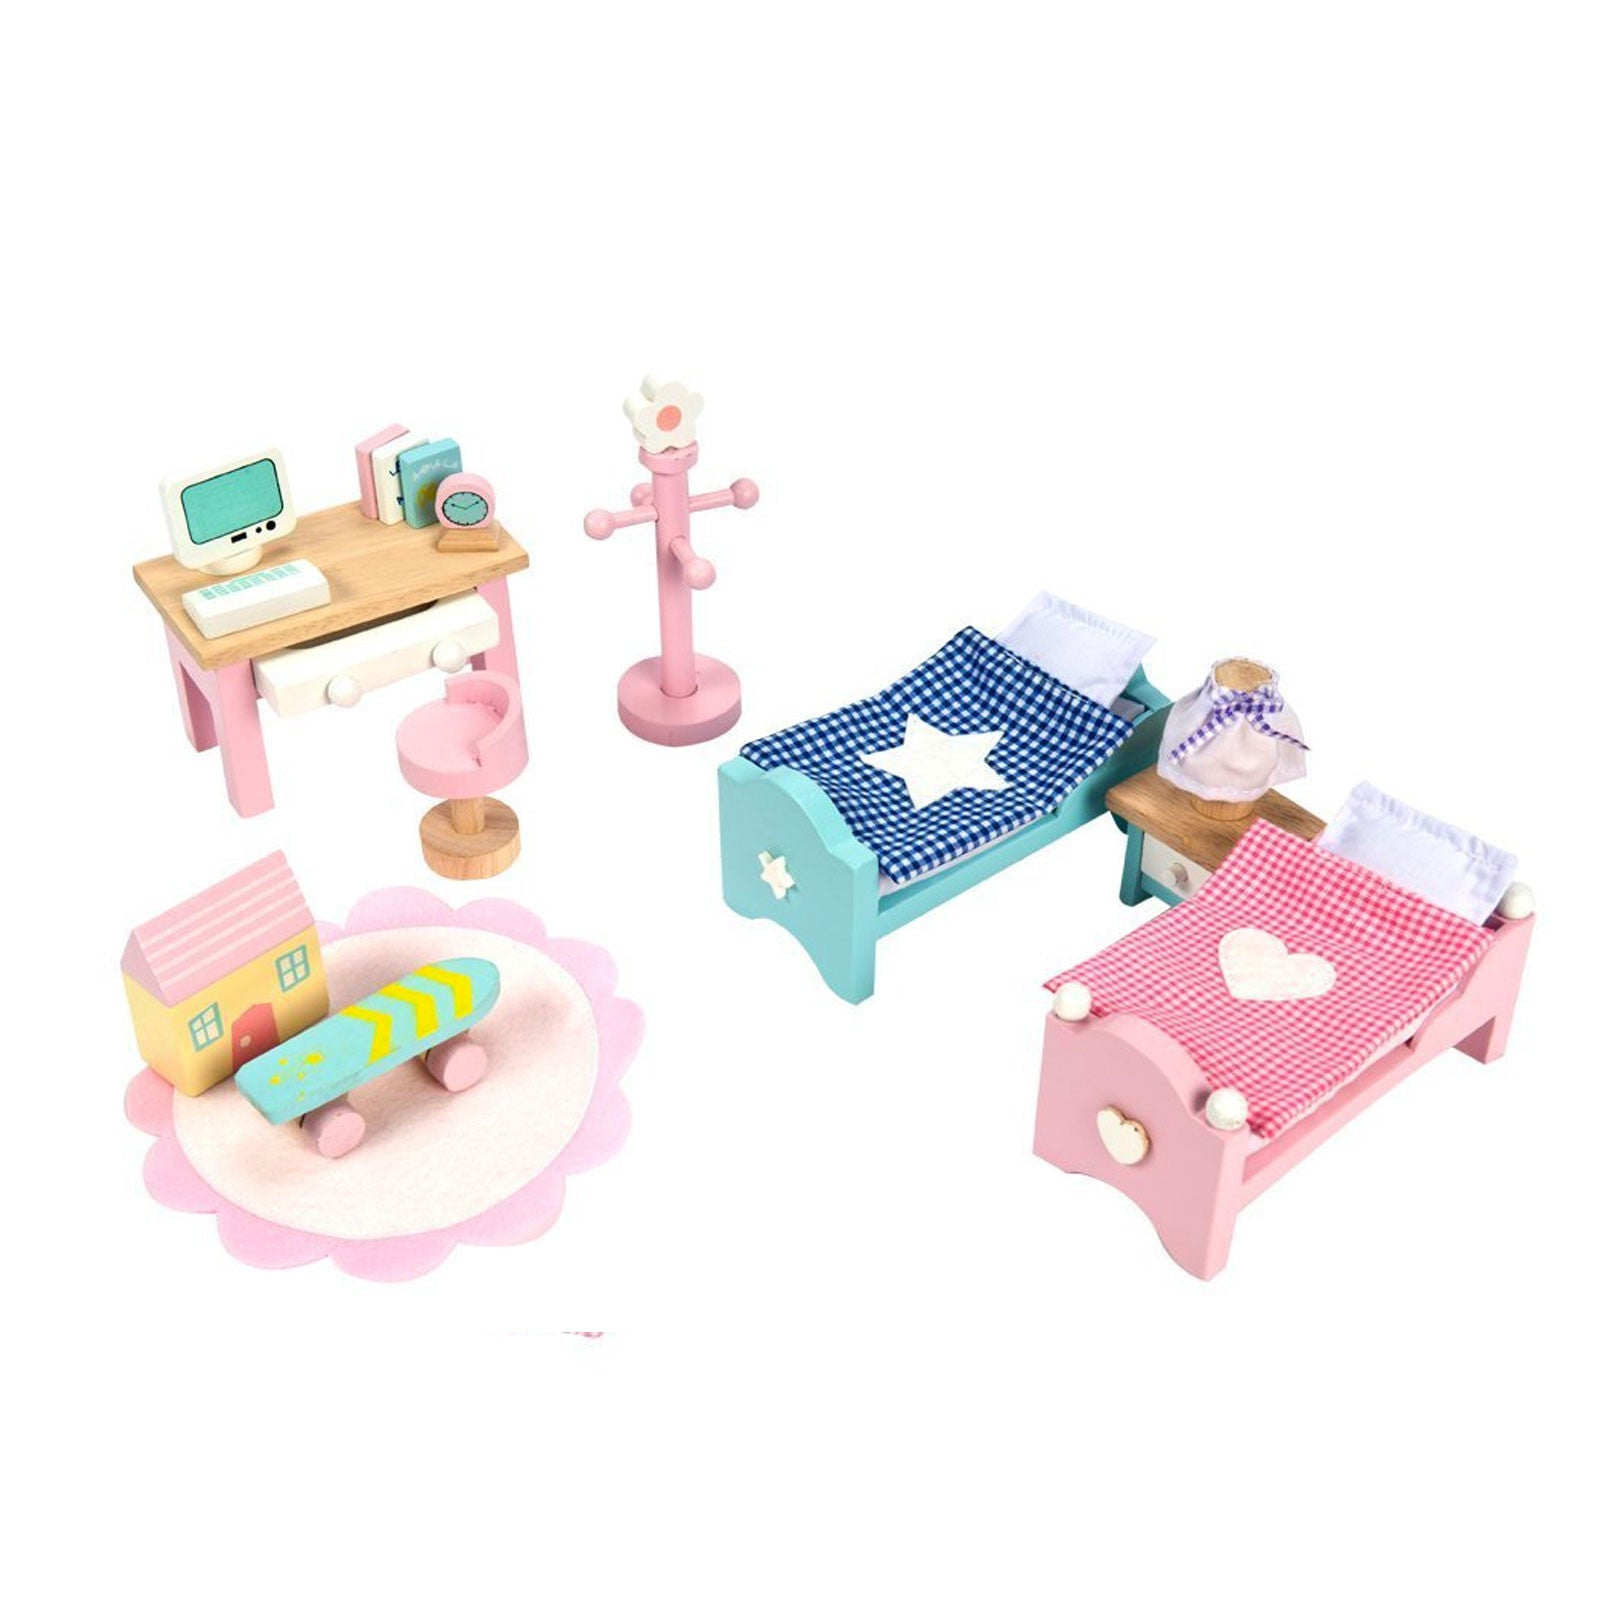 Le Toy Van Dolls House Furniture Le Toy Van Dollhouse Accessories Childs Bedroom at Little Earth Nest Eco Shop